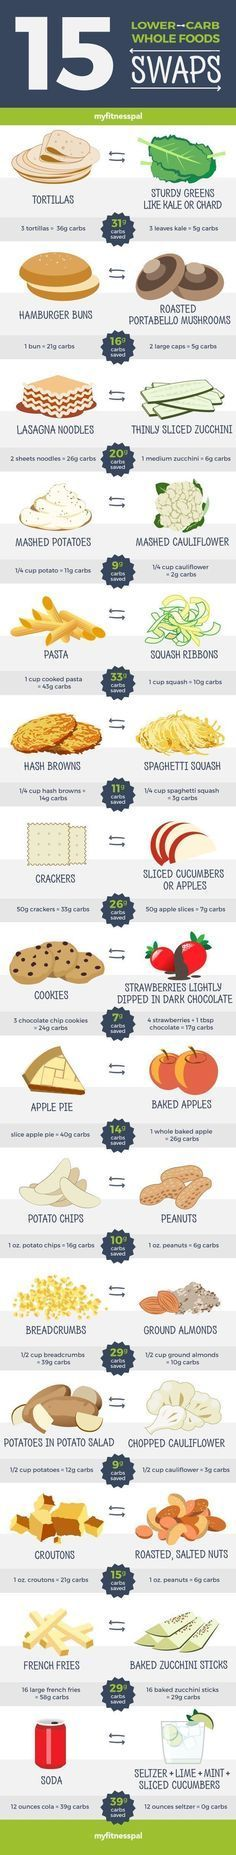 Lower-Carb Whole Food Swaps Trying to eat low carb? Try these easy lower carb swaps!Trying to eat low carb? Try these easy lower carb swaps! Healthy Alternatives, Healthy Options, Healthy Tips, Healthy Snacks, Healthy Recipes, Eating Healthy, Clean Eating, Healthy Weight, How To Eat Healthy